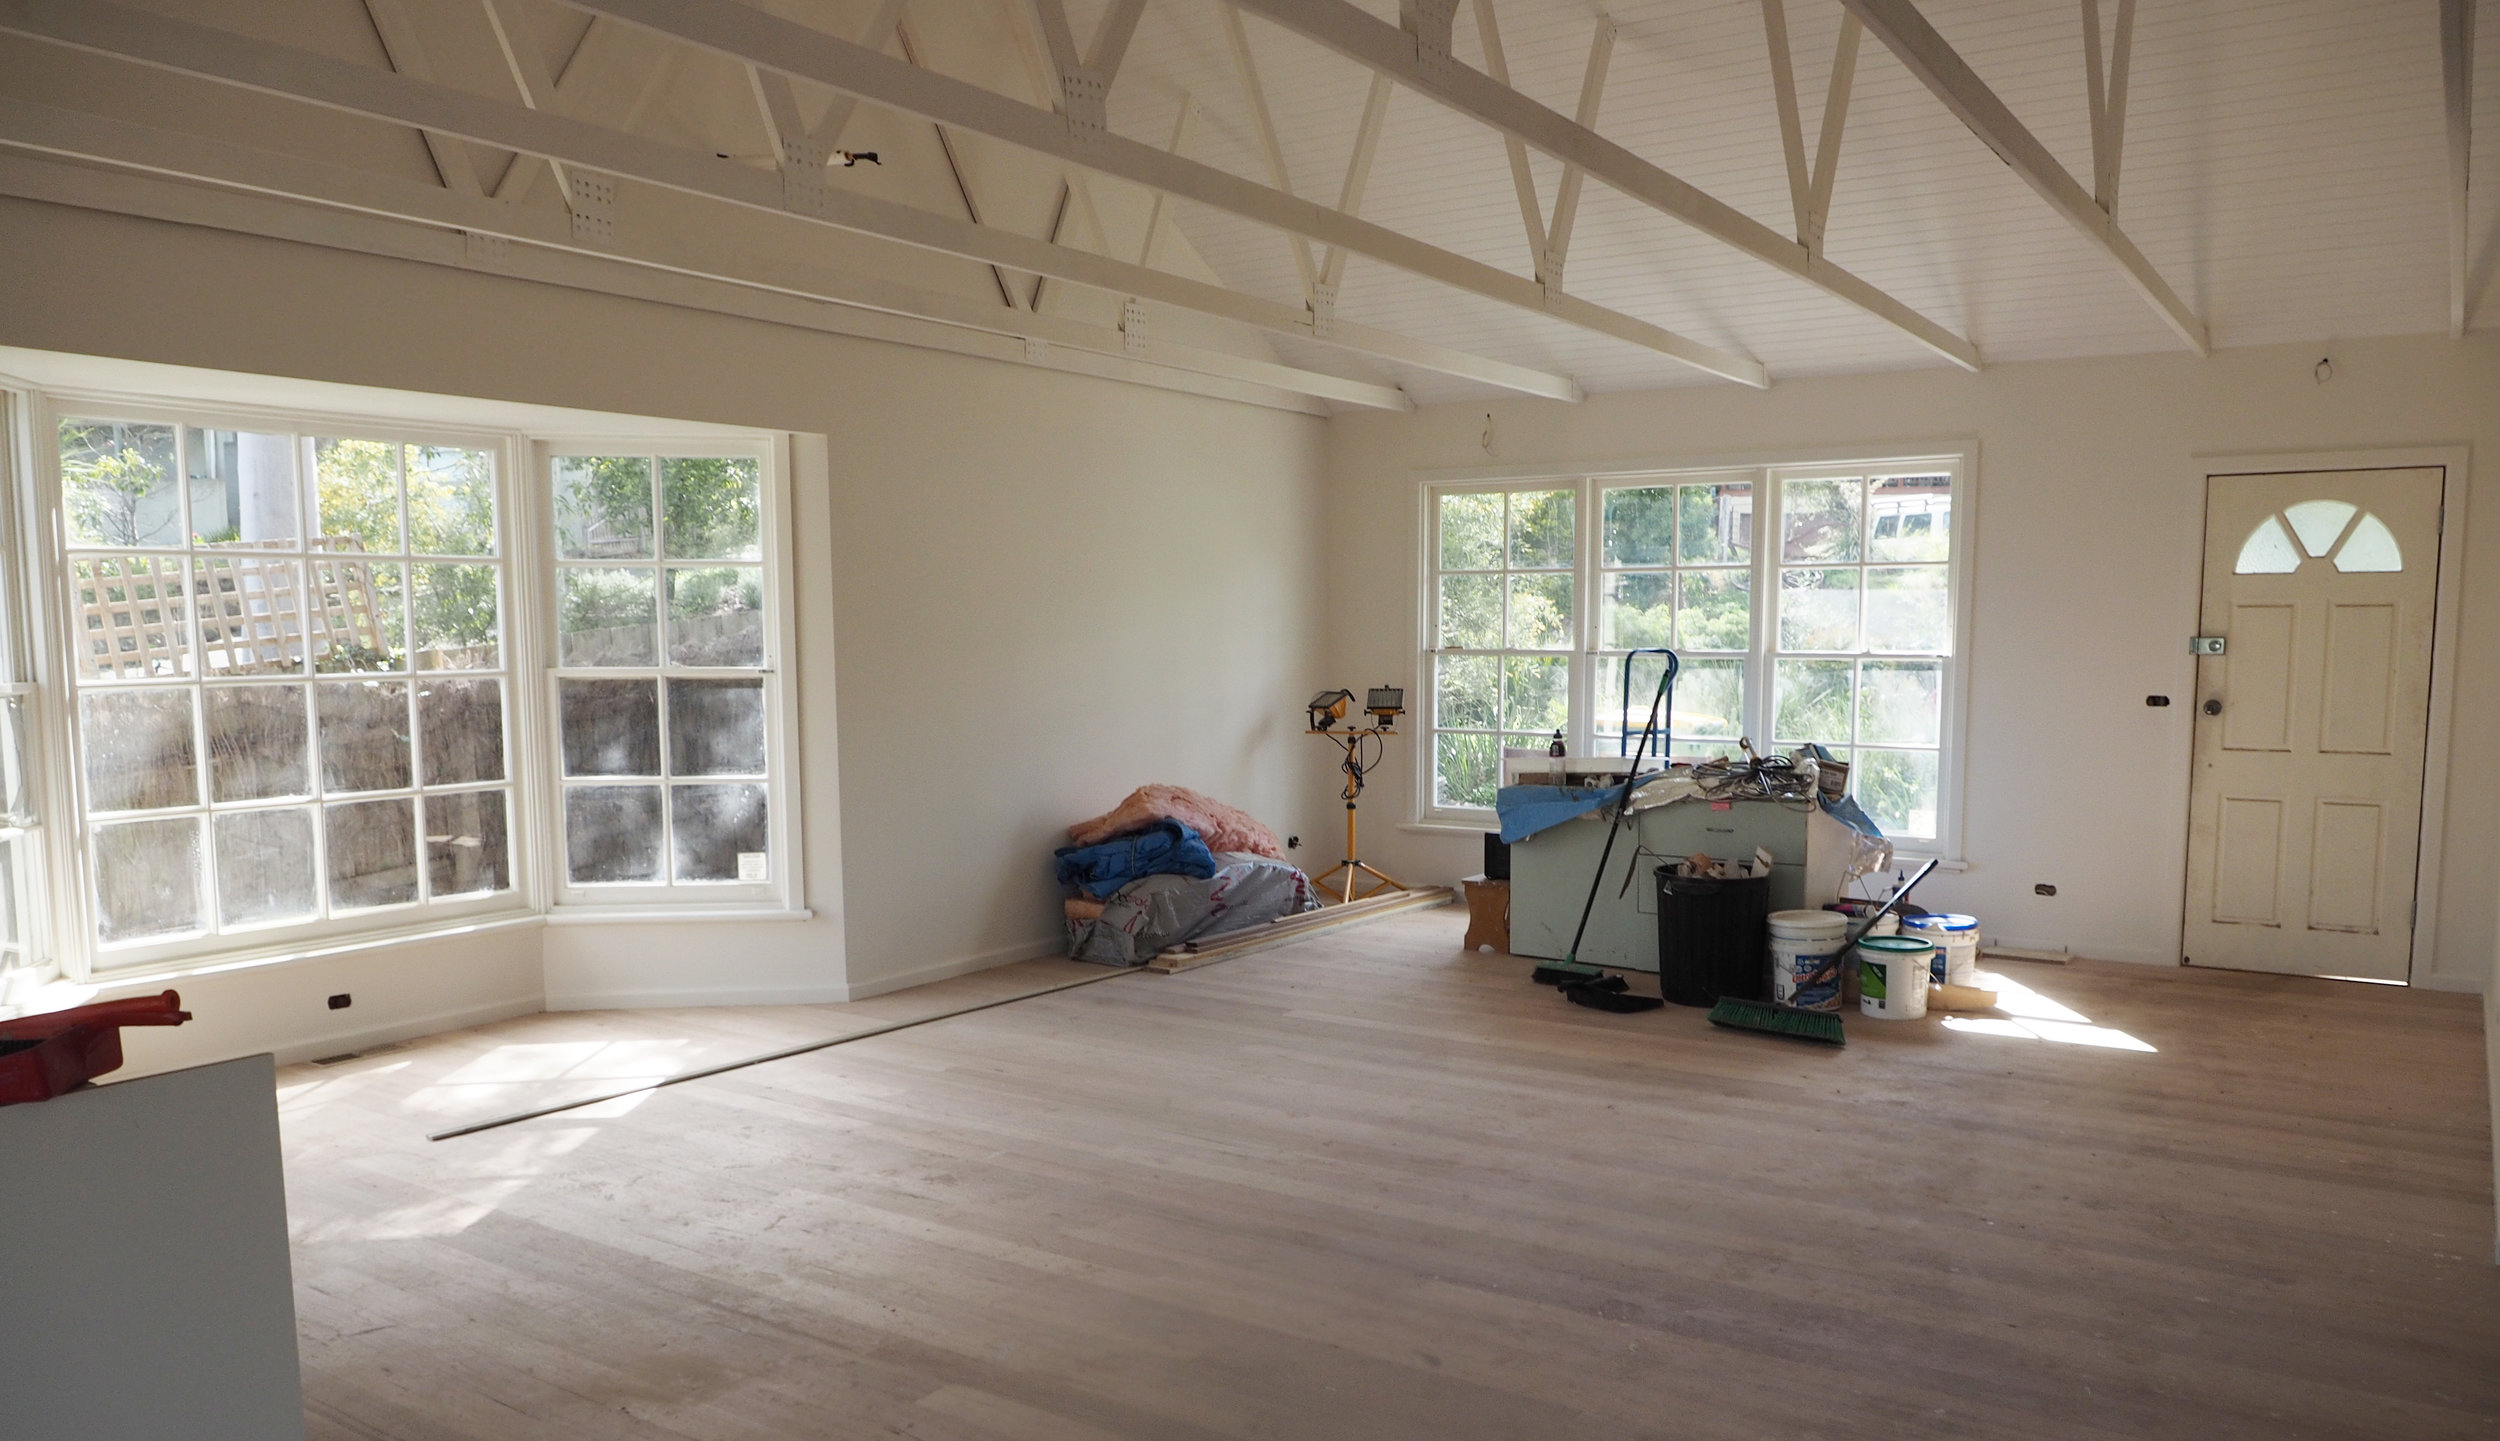 New floorboards in newly renovated home - The Organised You.